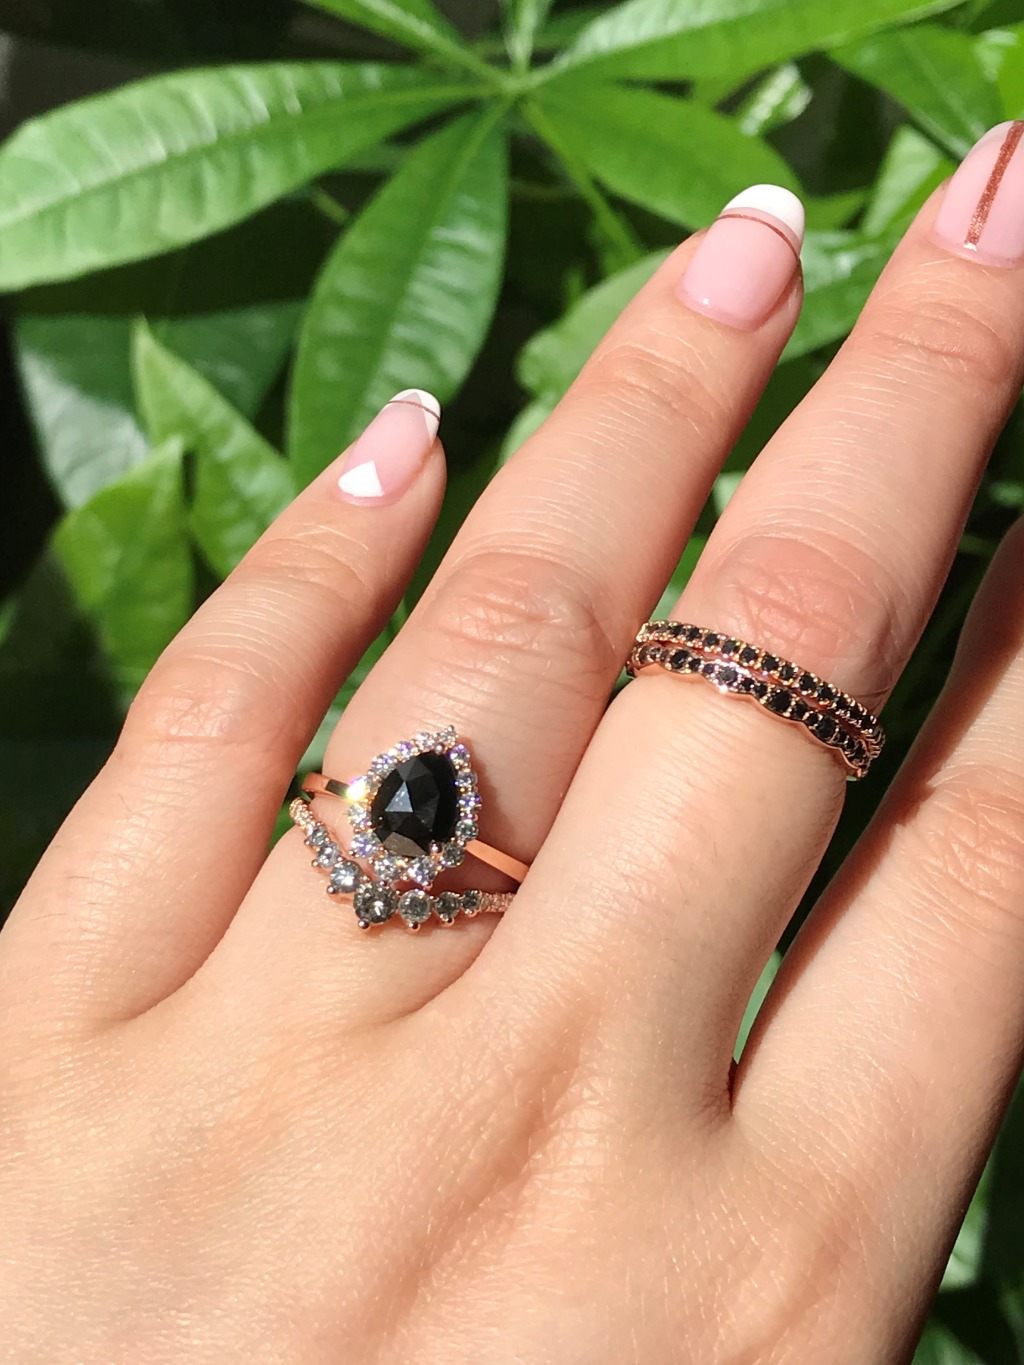 La More Design's 7 Stone Grey Diamond Wedding Band complements this Rose Cut Black Diamond Tiara Halo Engagement Ring perfectly! Check